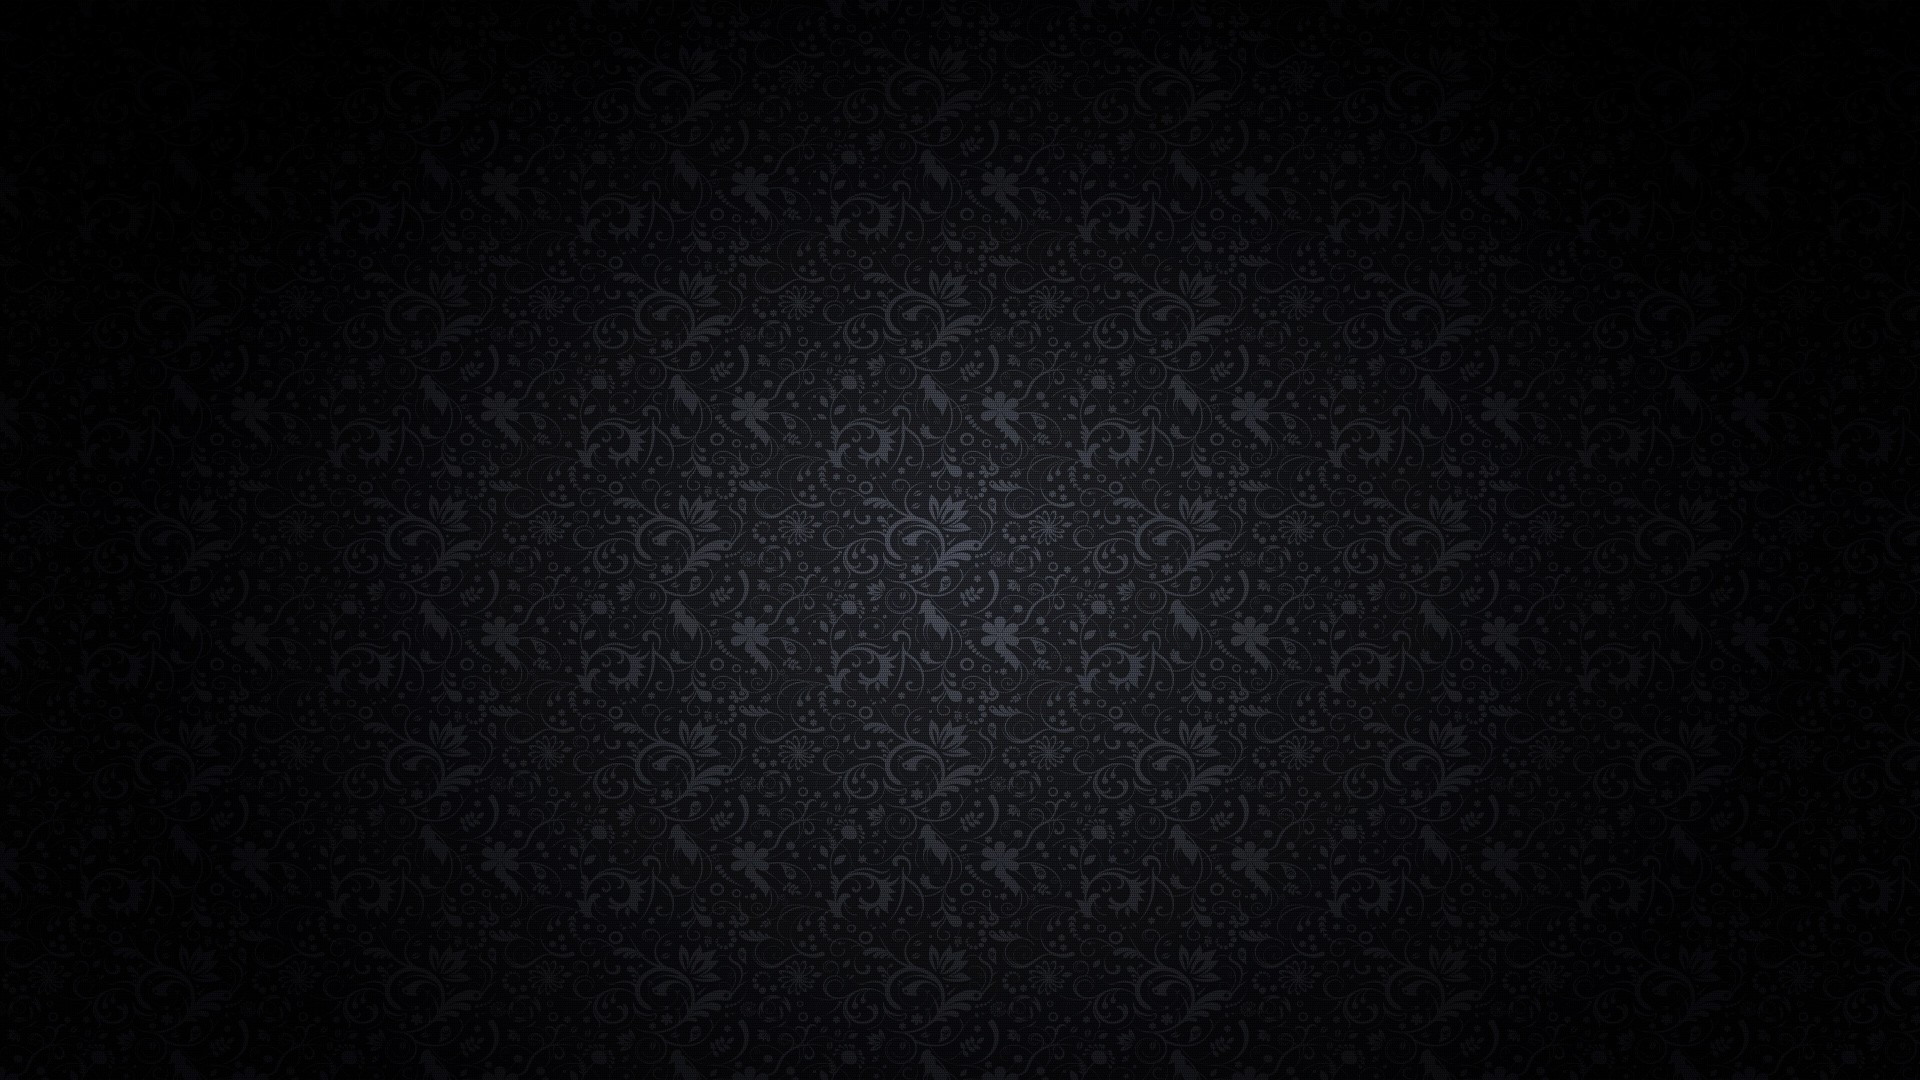 Black background pattern wallpaper